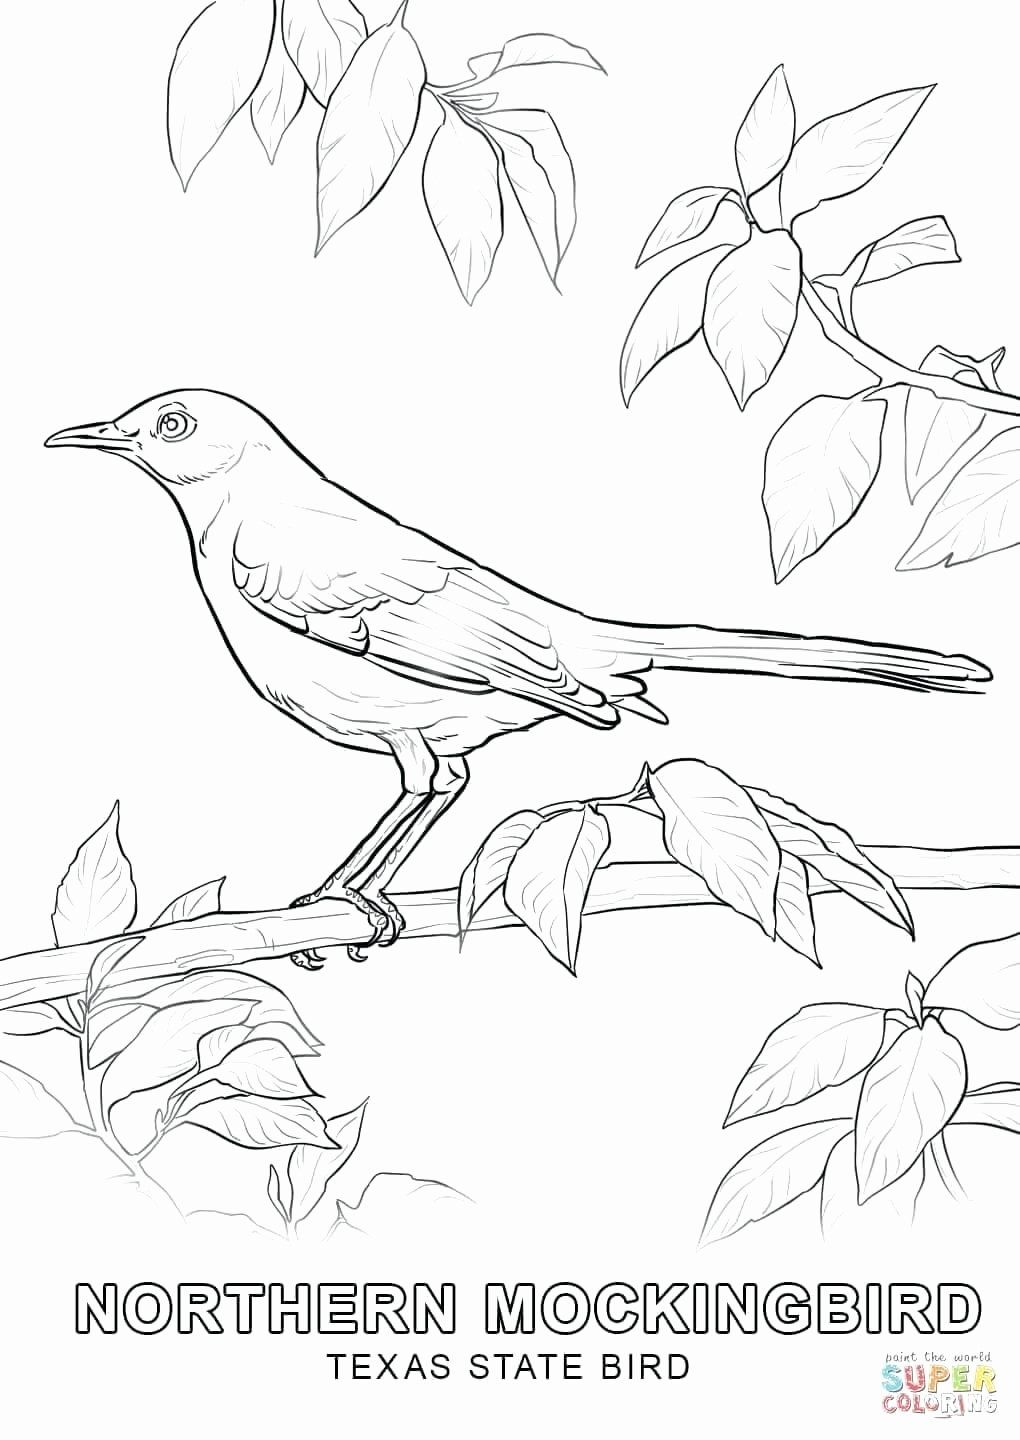 Pennsylvania State Bird Coloring Page New Pennsylvania State Tree Coloring Page Turnkeyprint Bird Coloring Pages Flag Coloring Pages Coloring Pages Nature